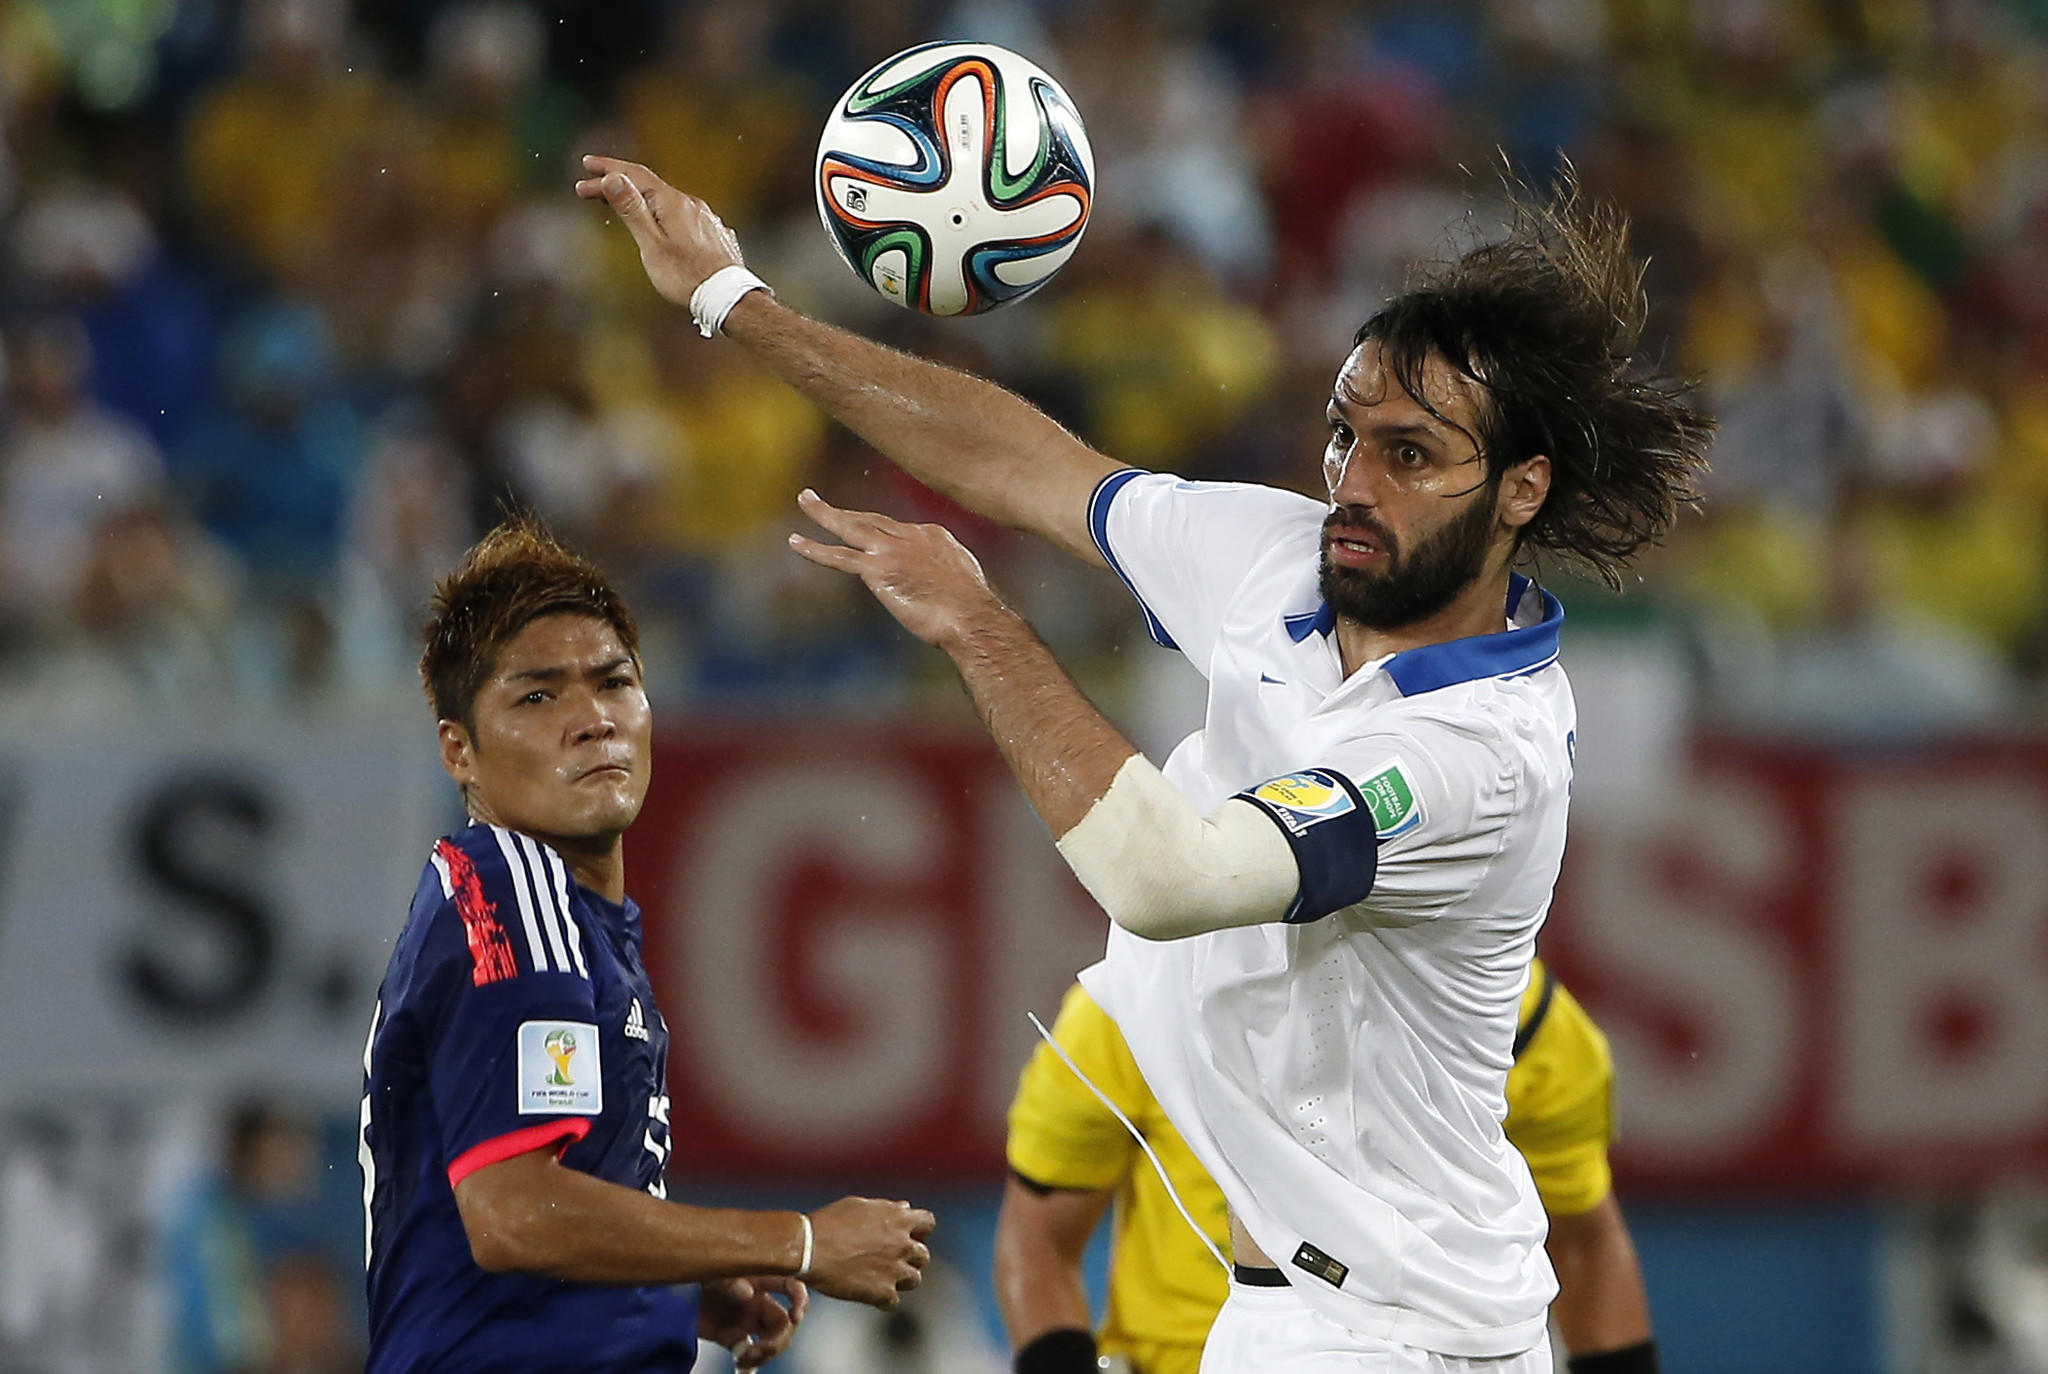 Greece forward Giorgos Samaras (7) controls the ball in front of Japan forward Yoshito Okubo (13) during the second half of their 0-0 tie.